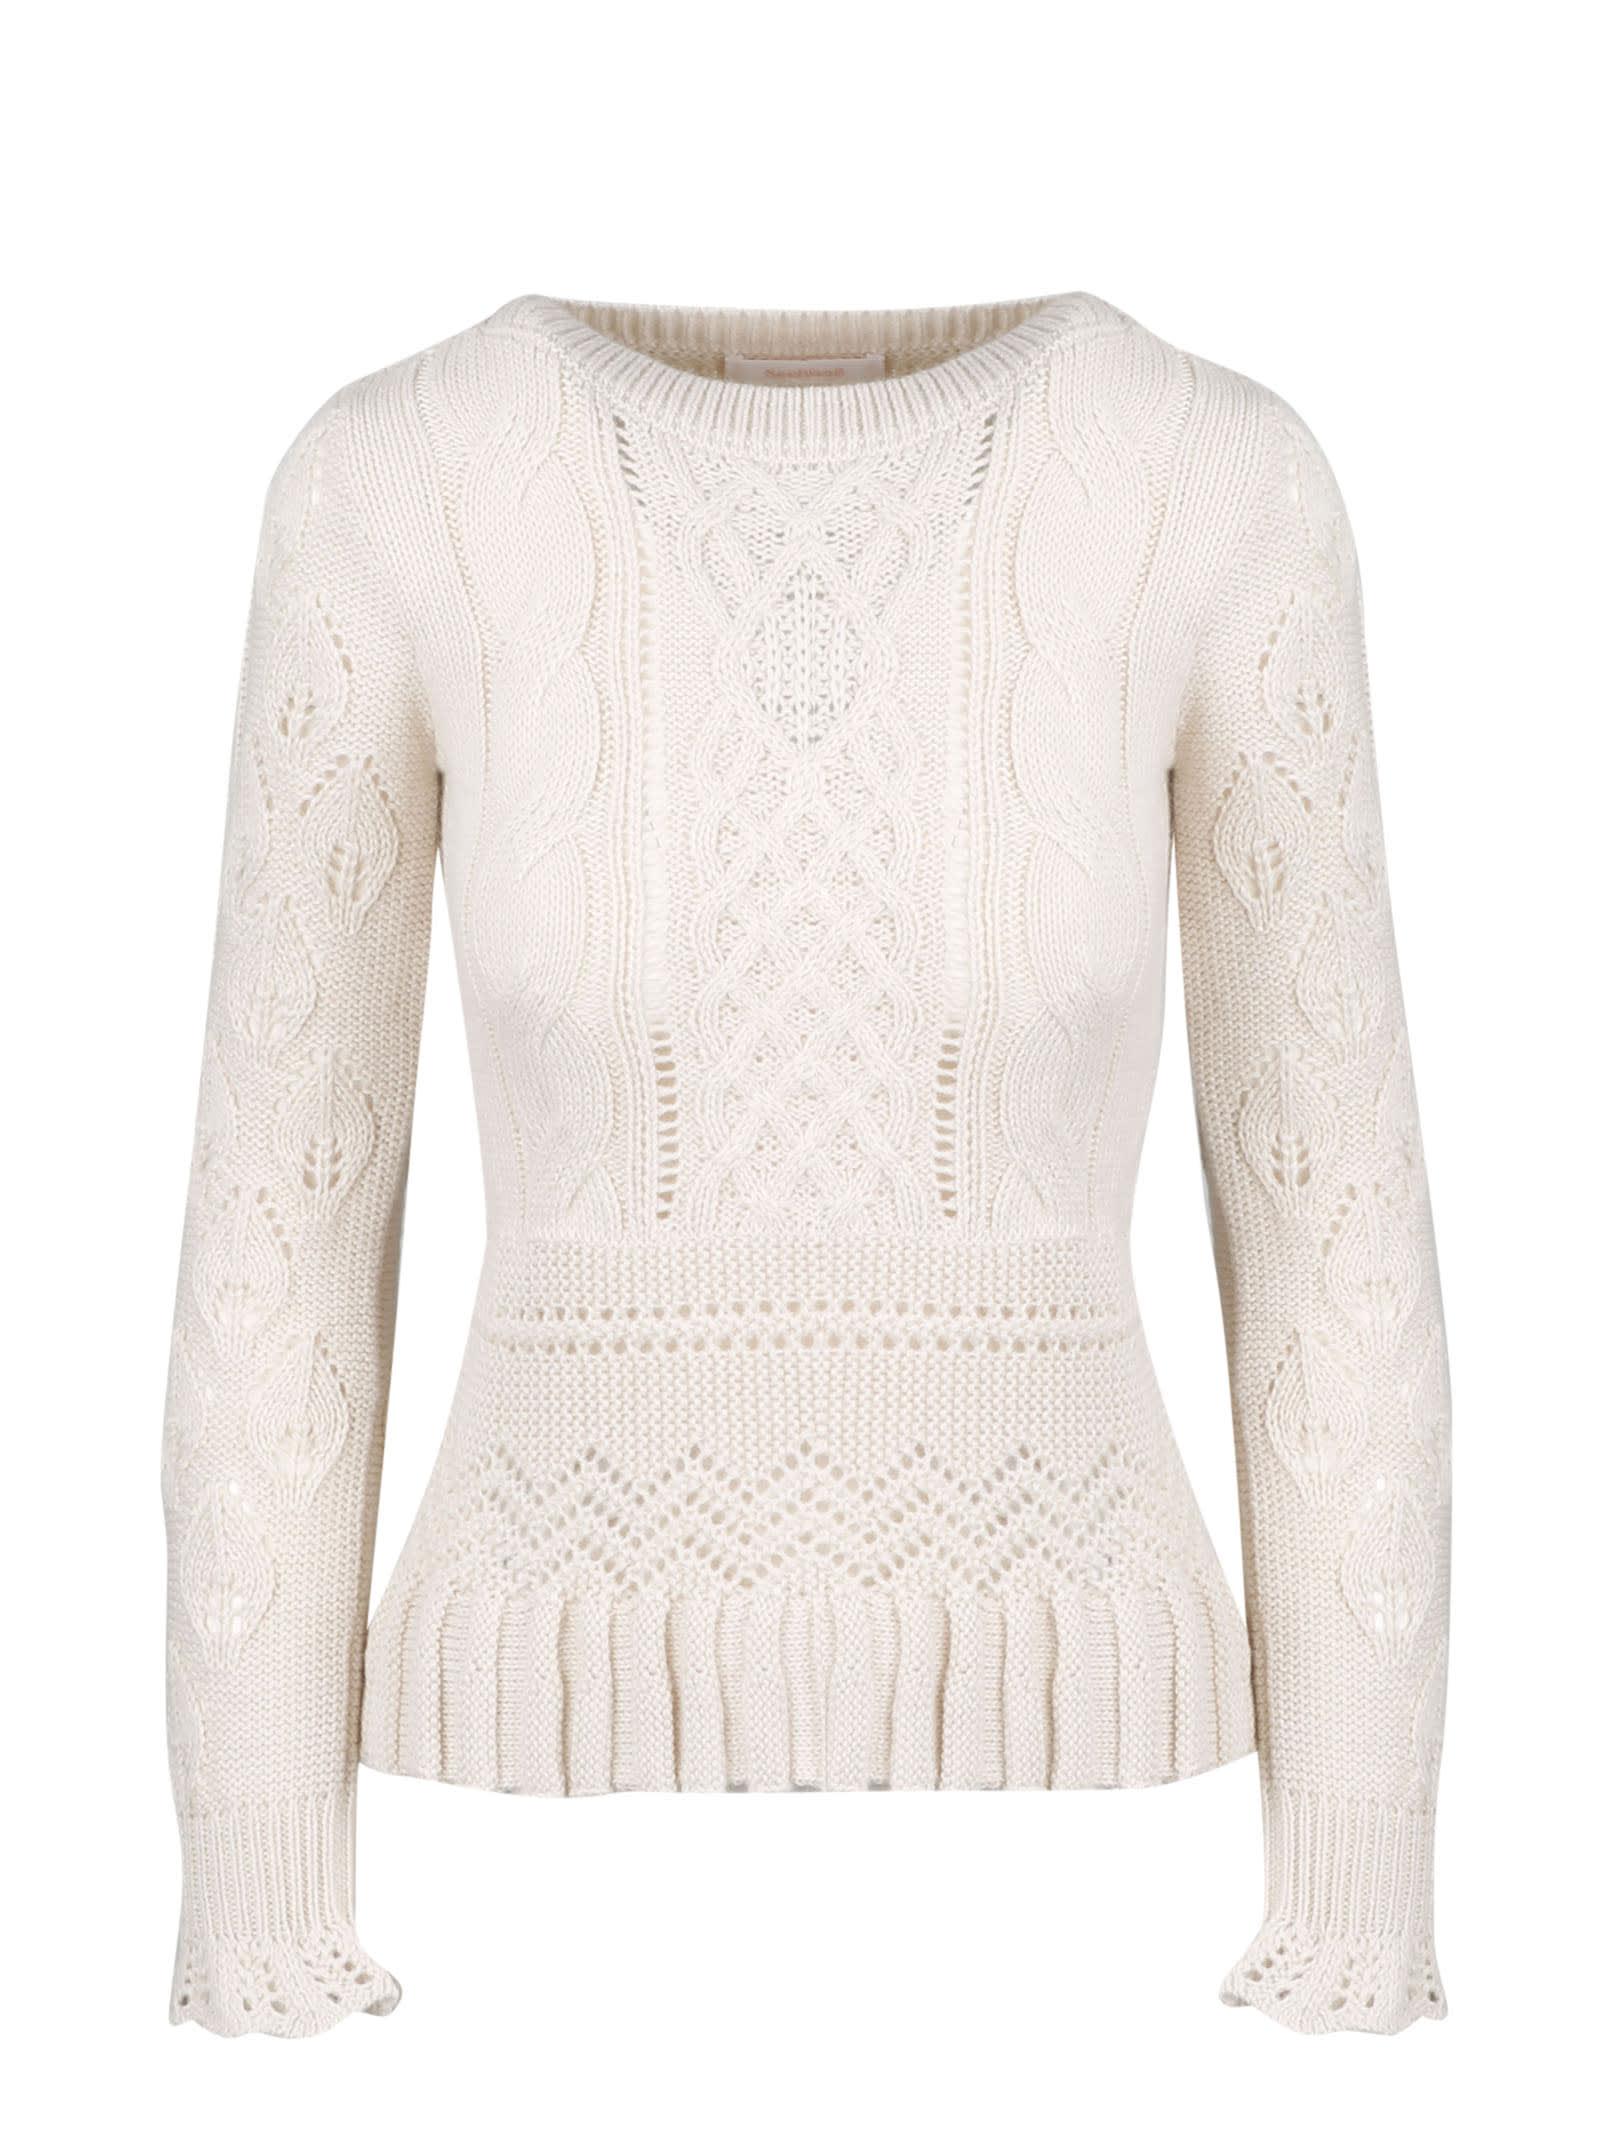 See by Chloé Ruffles Sweater